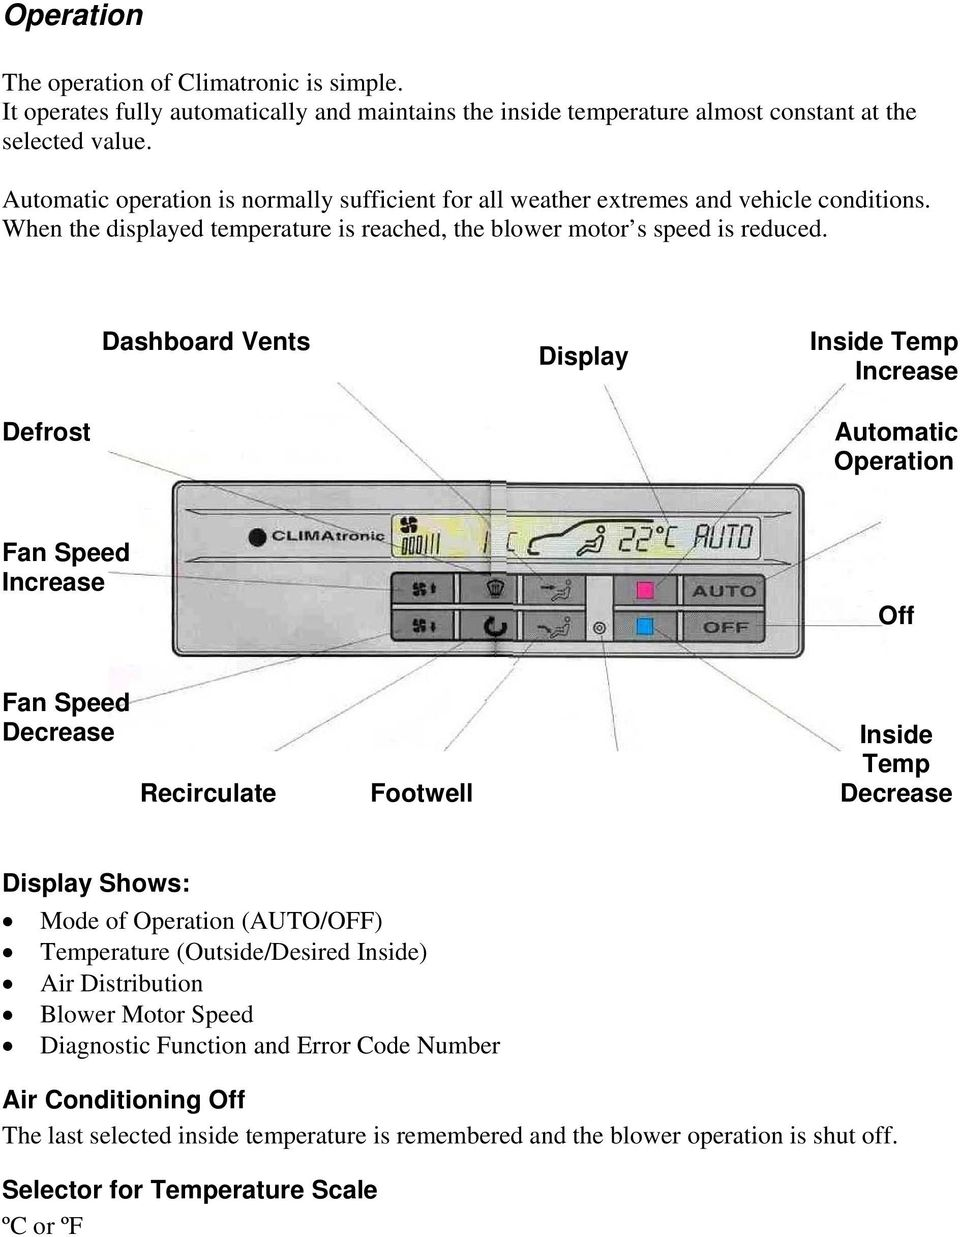 Vag Service Climatronic Use At Your Own Risk This Footwell Light Wiring Diagram 1999 Gmc Sierra Dashboard Vents Display Inside Temp Increase Defrost Automatic Operation Fan Speed Off Decrease